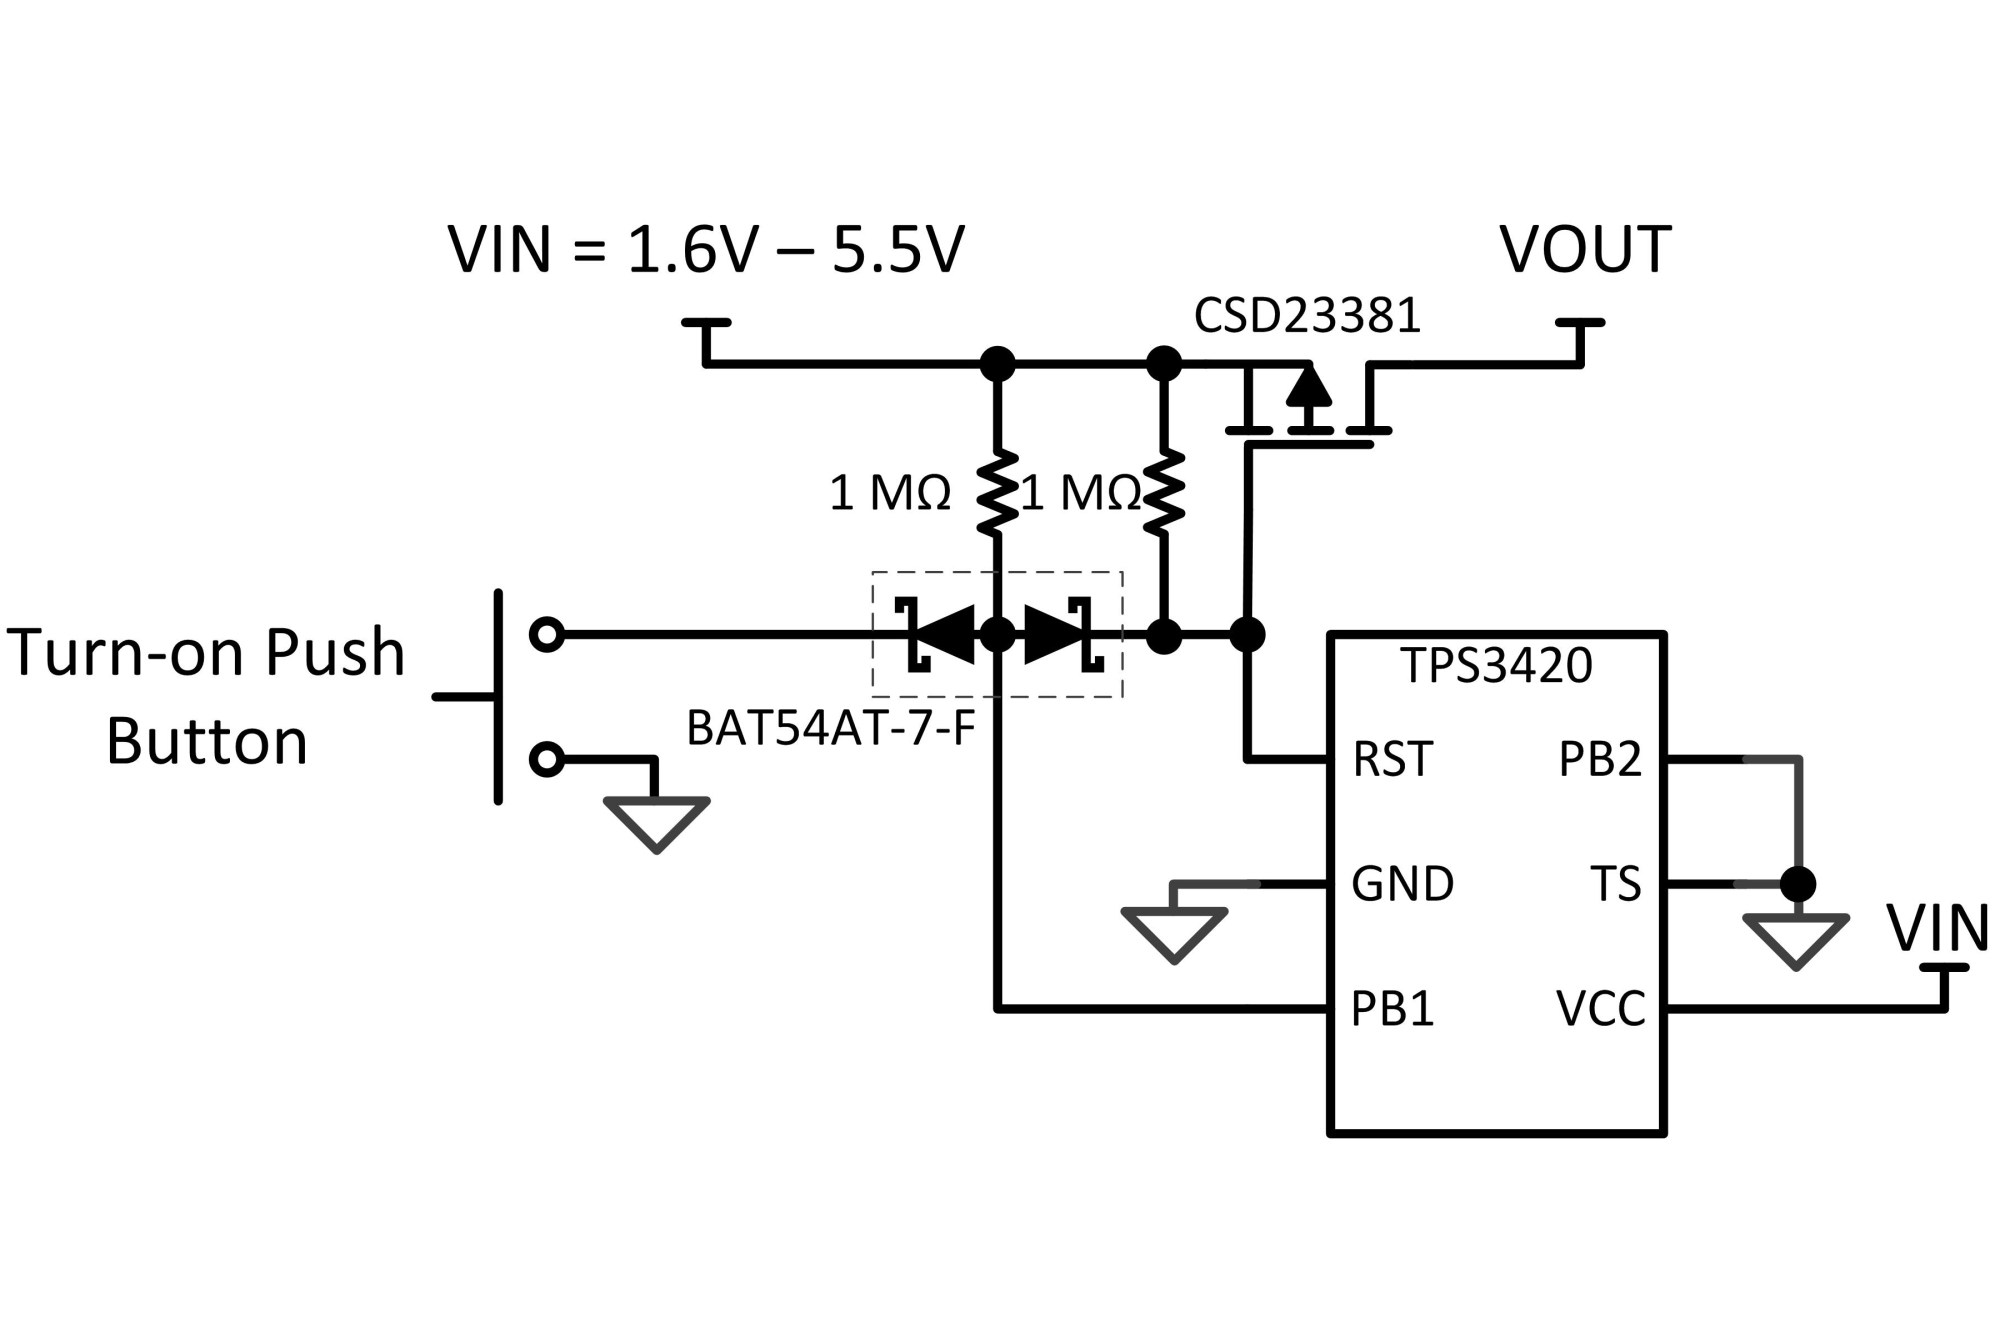 hight resolution of  basic latch by enabling the load with a button push of 7 5 seconds utilizing texas instrument s tps3420 push button controller to turn on the switch